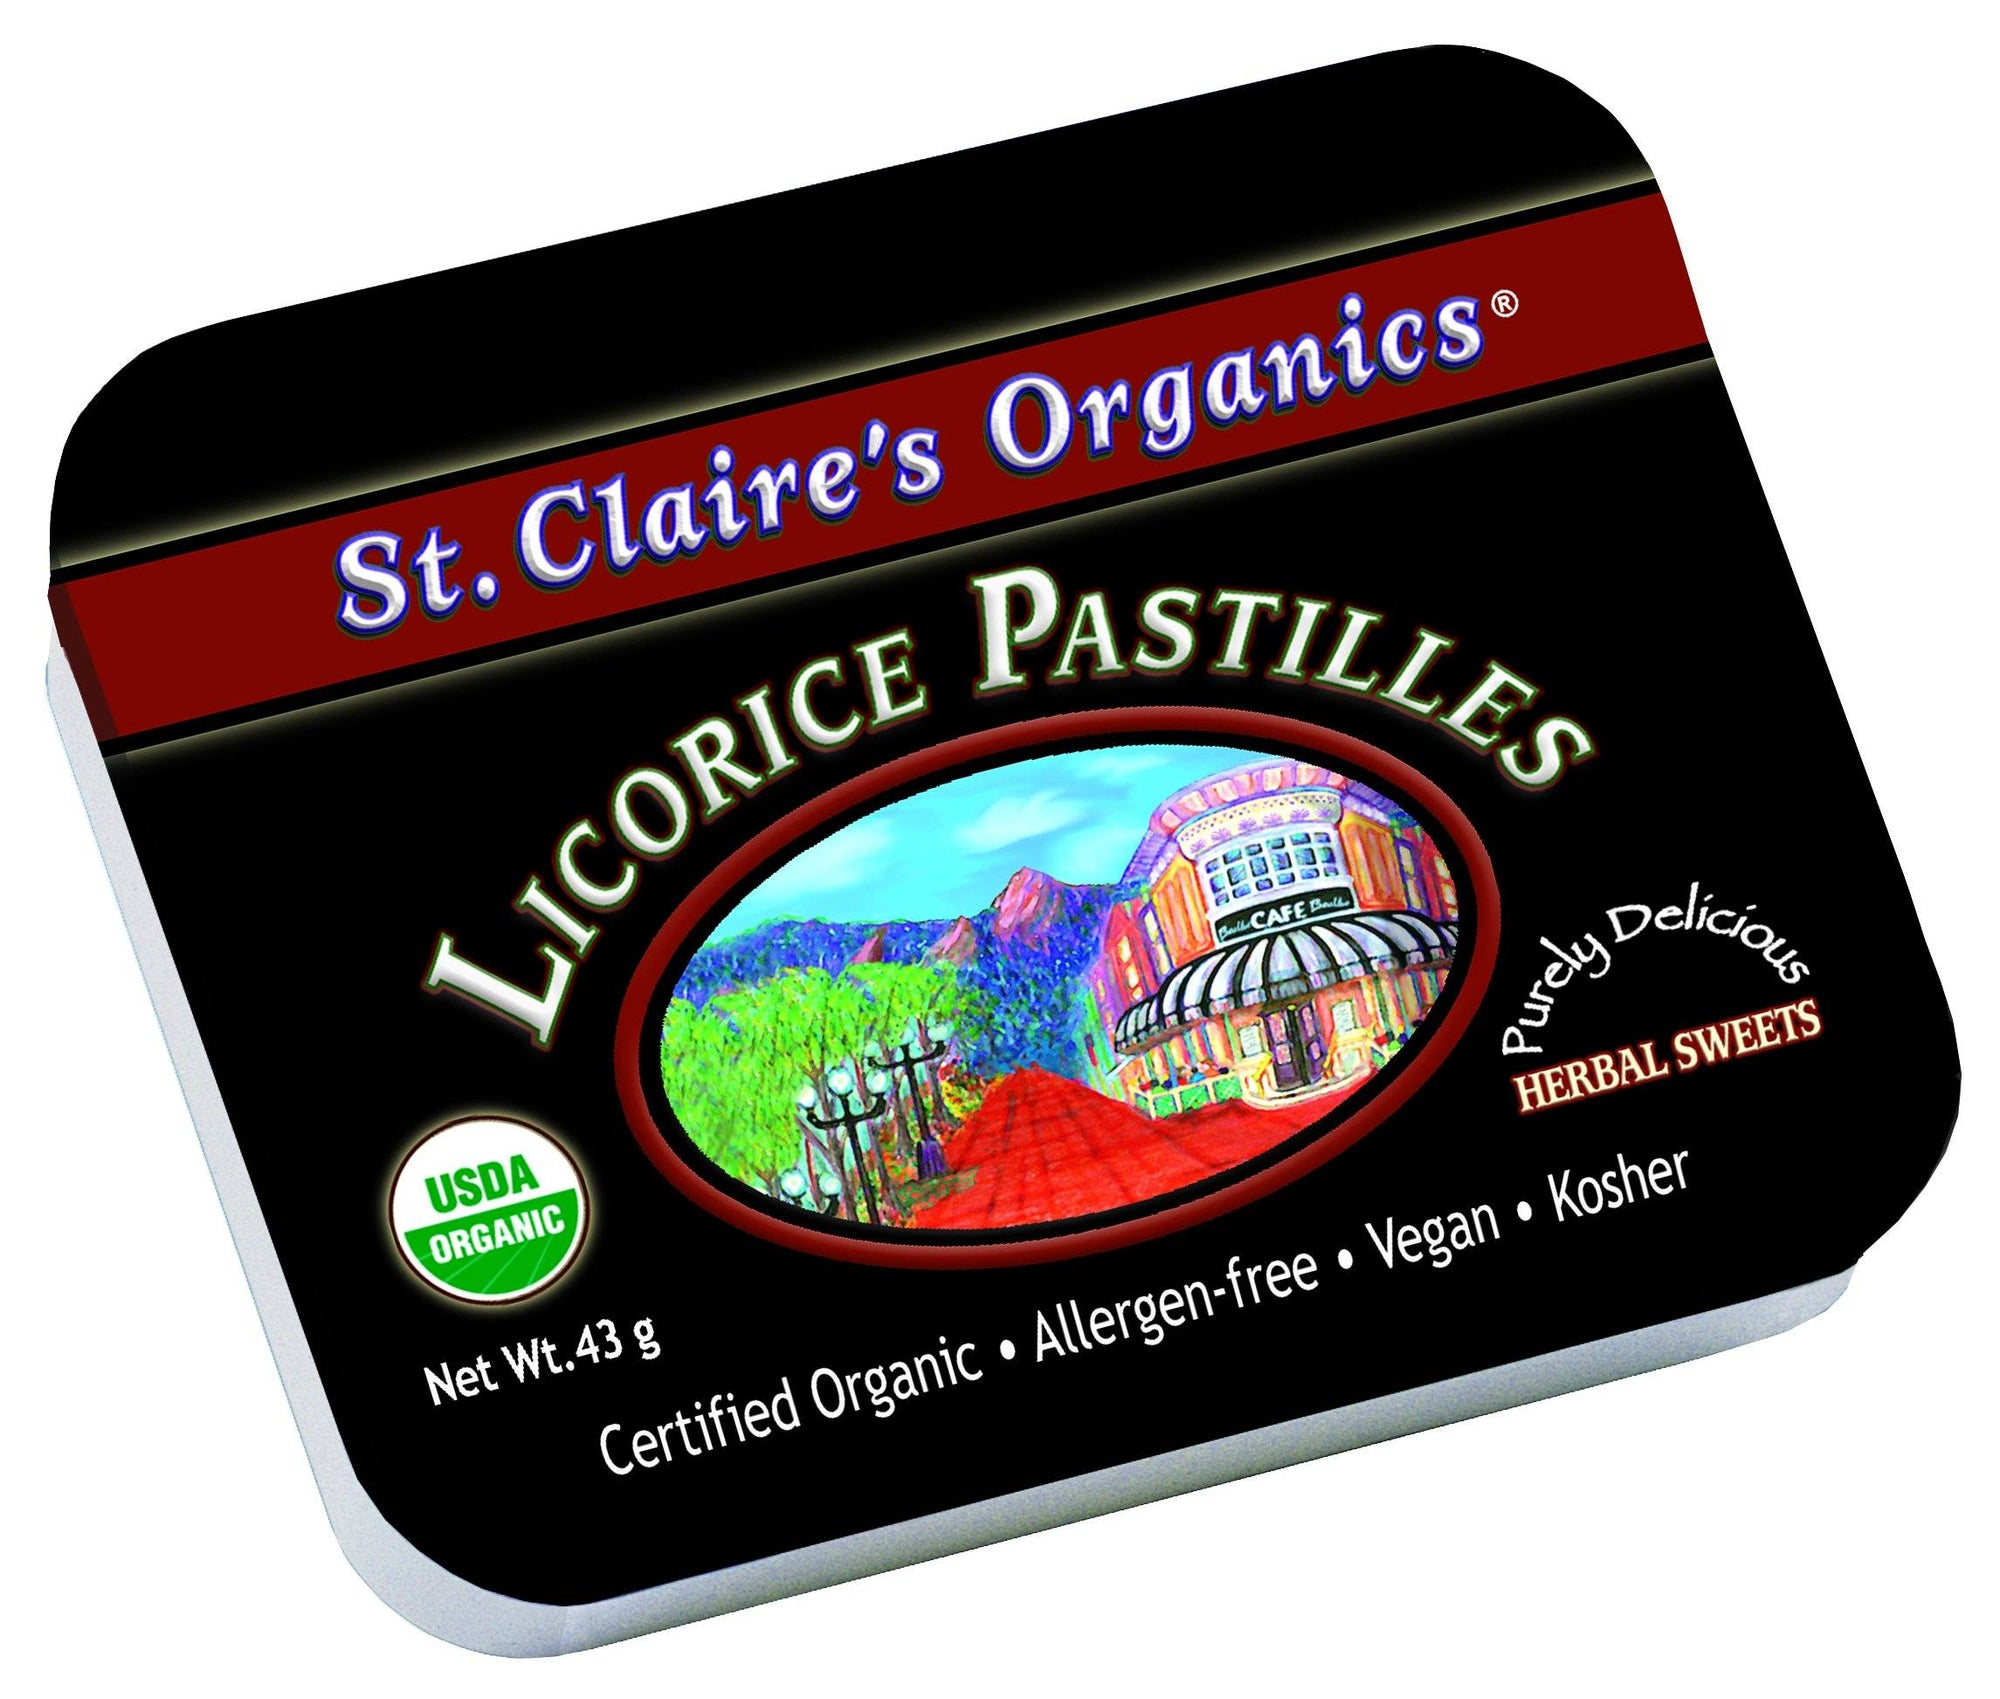 Food & Drink - St. Claire's Organic Licorice Sweets - 43g